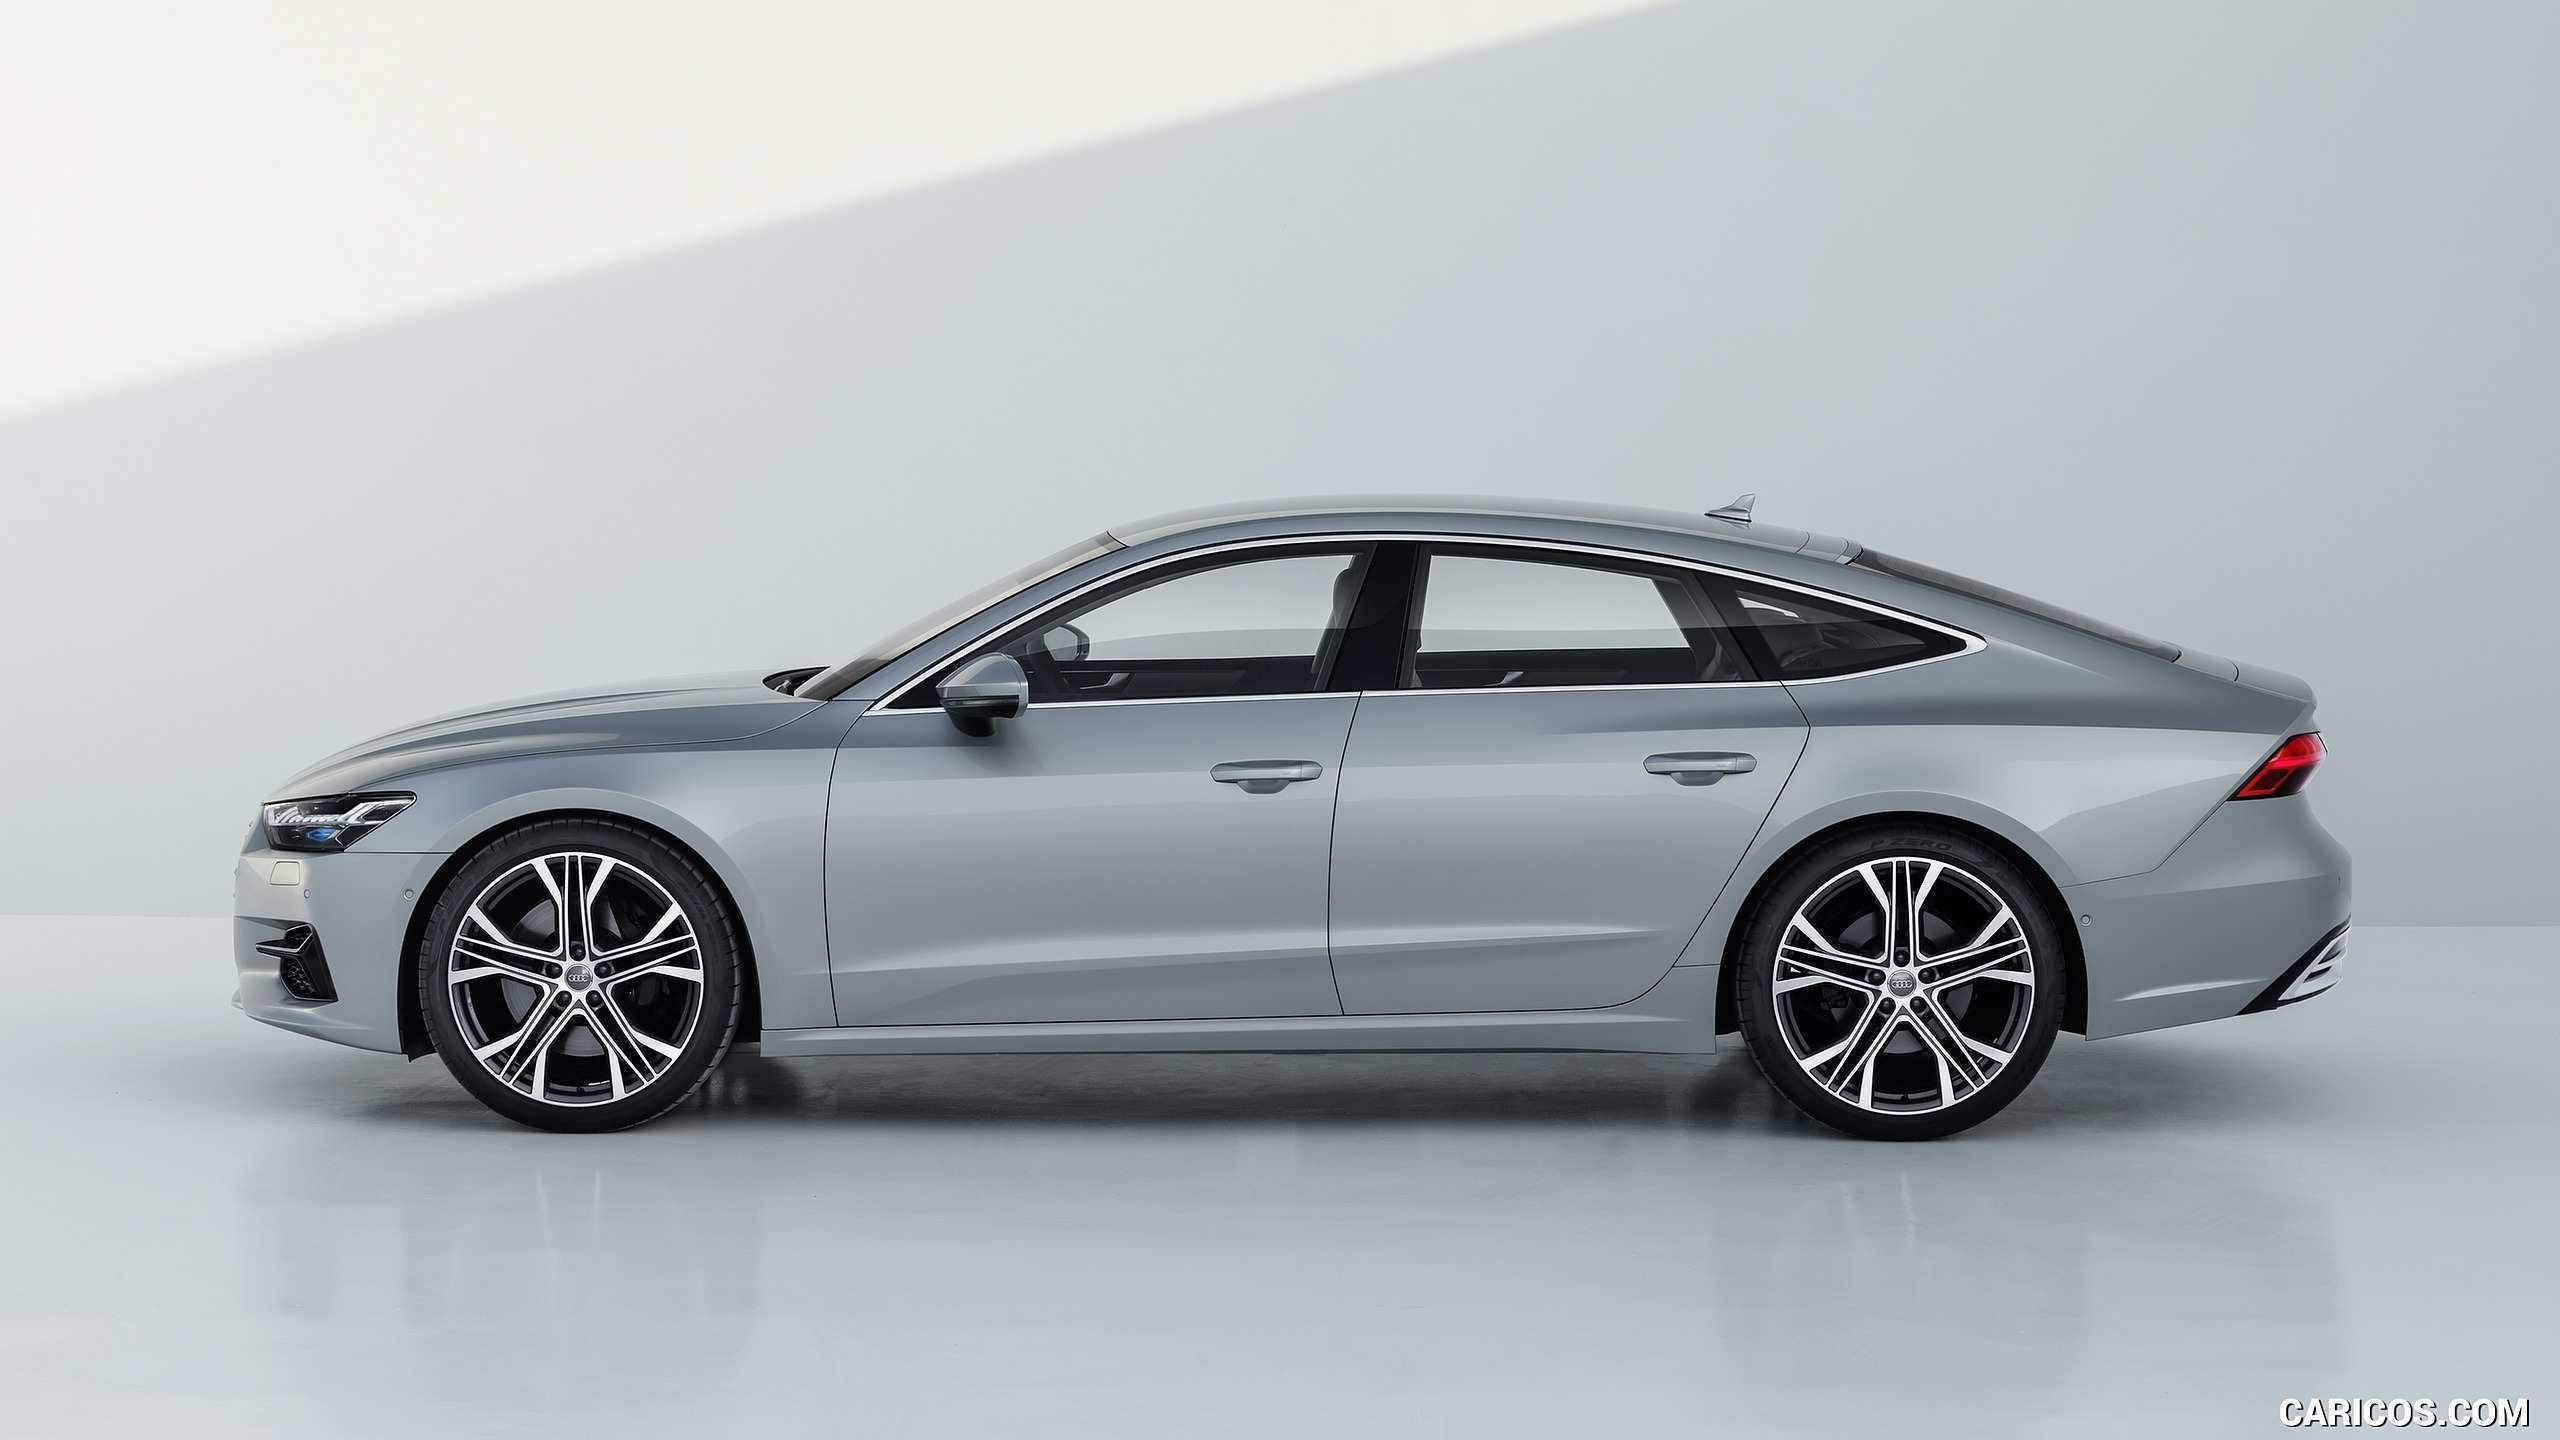 51 The Best 2019 Audi A7 Colors Redesign And Concept